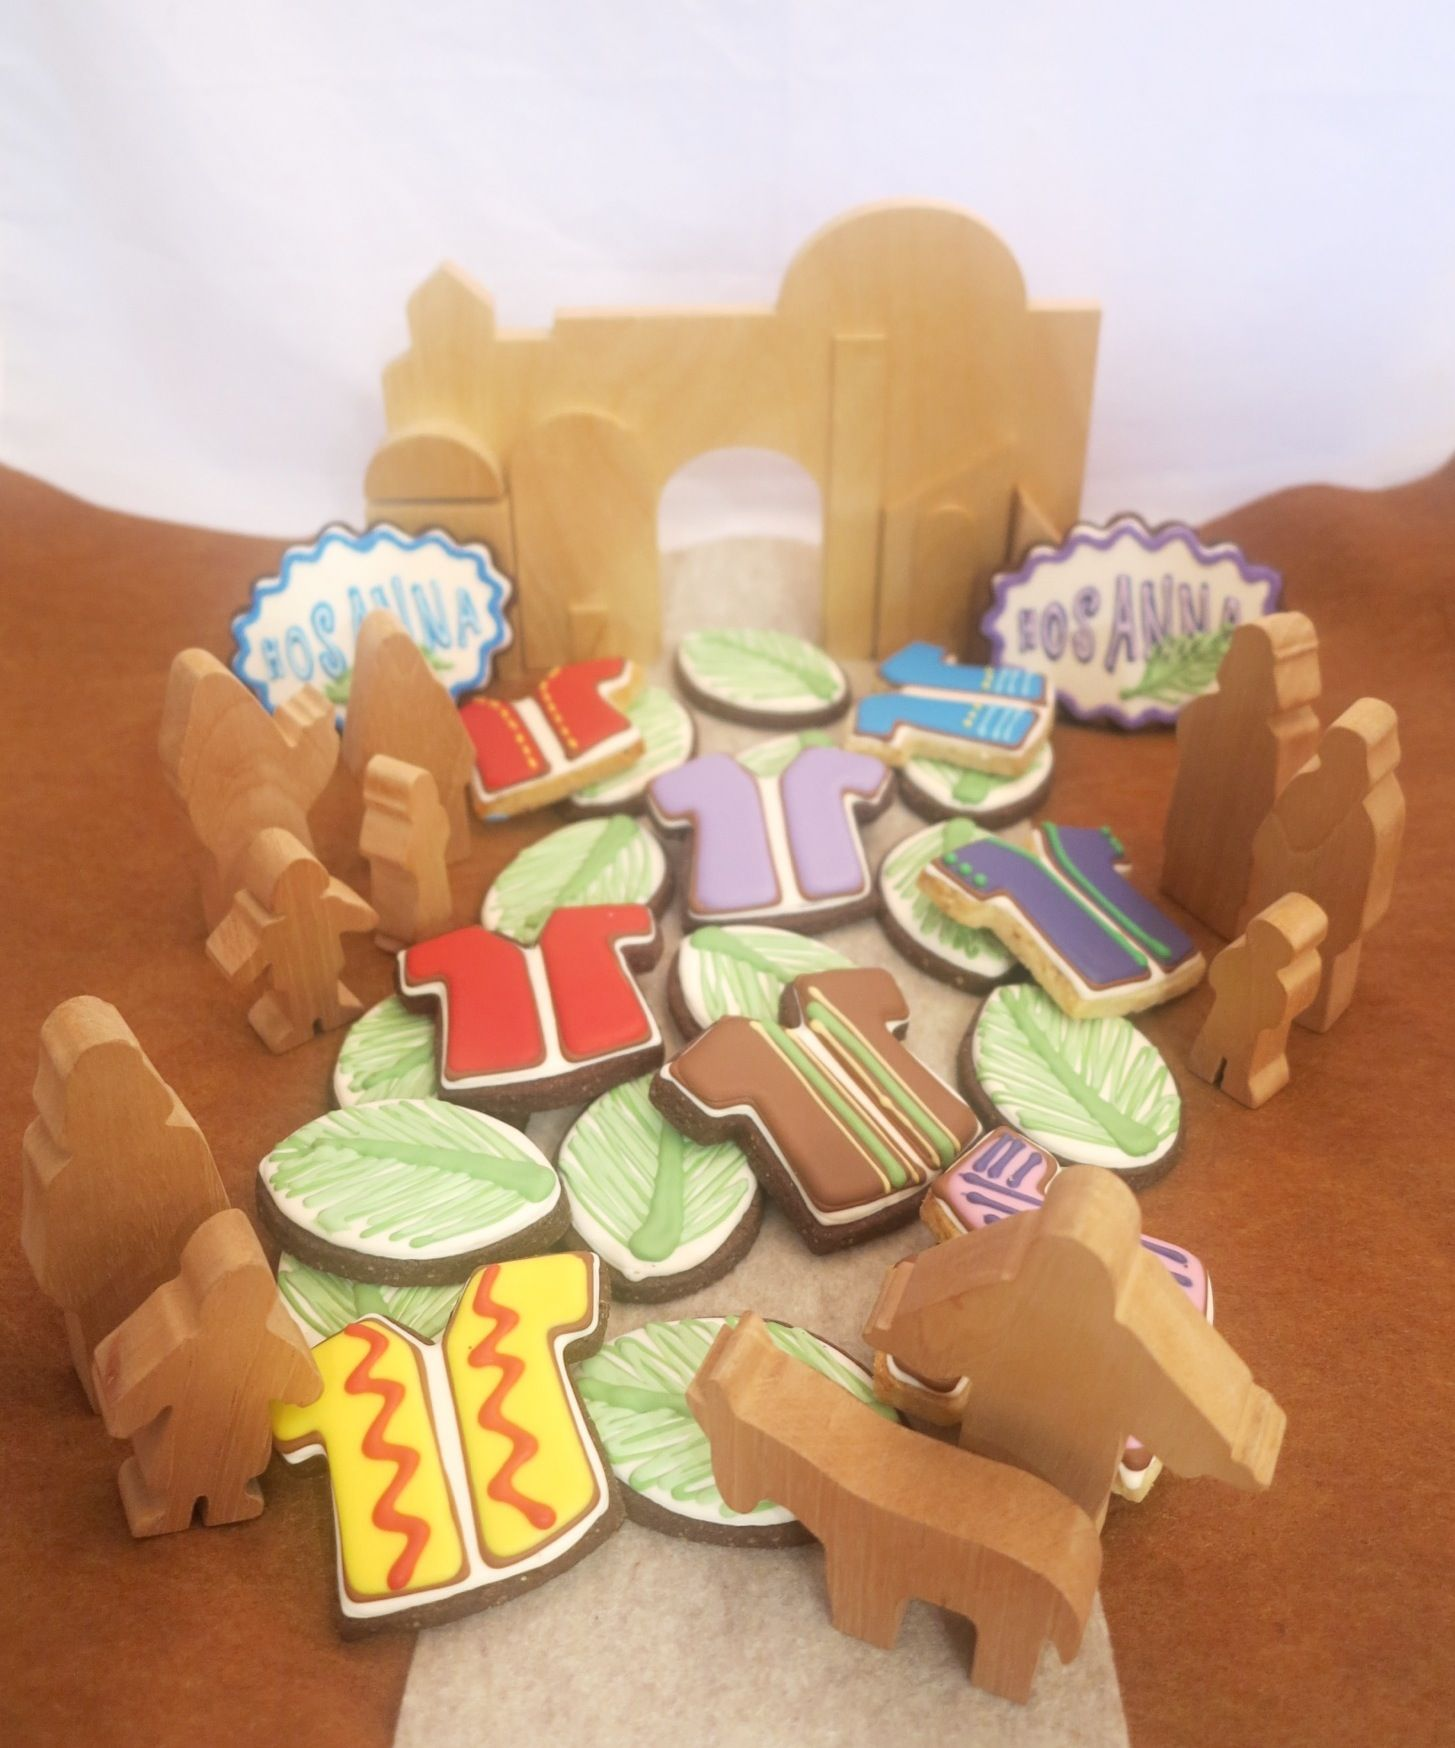 Just a picture: Palm Sunday cookies and wood city | Palm Sunday ...